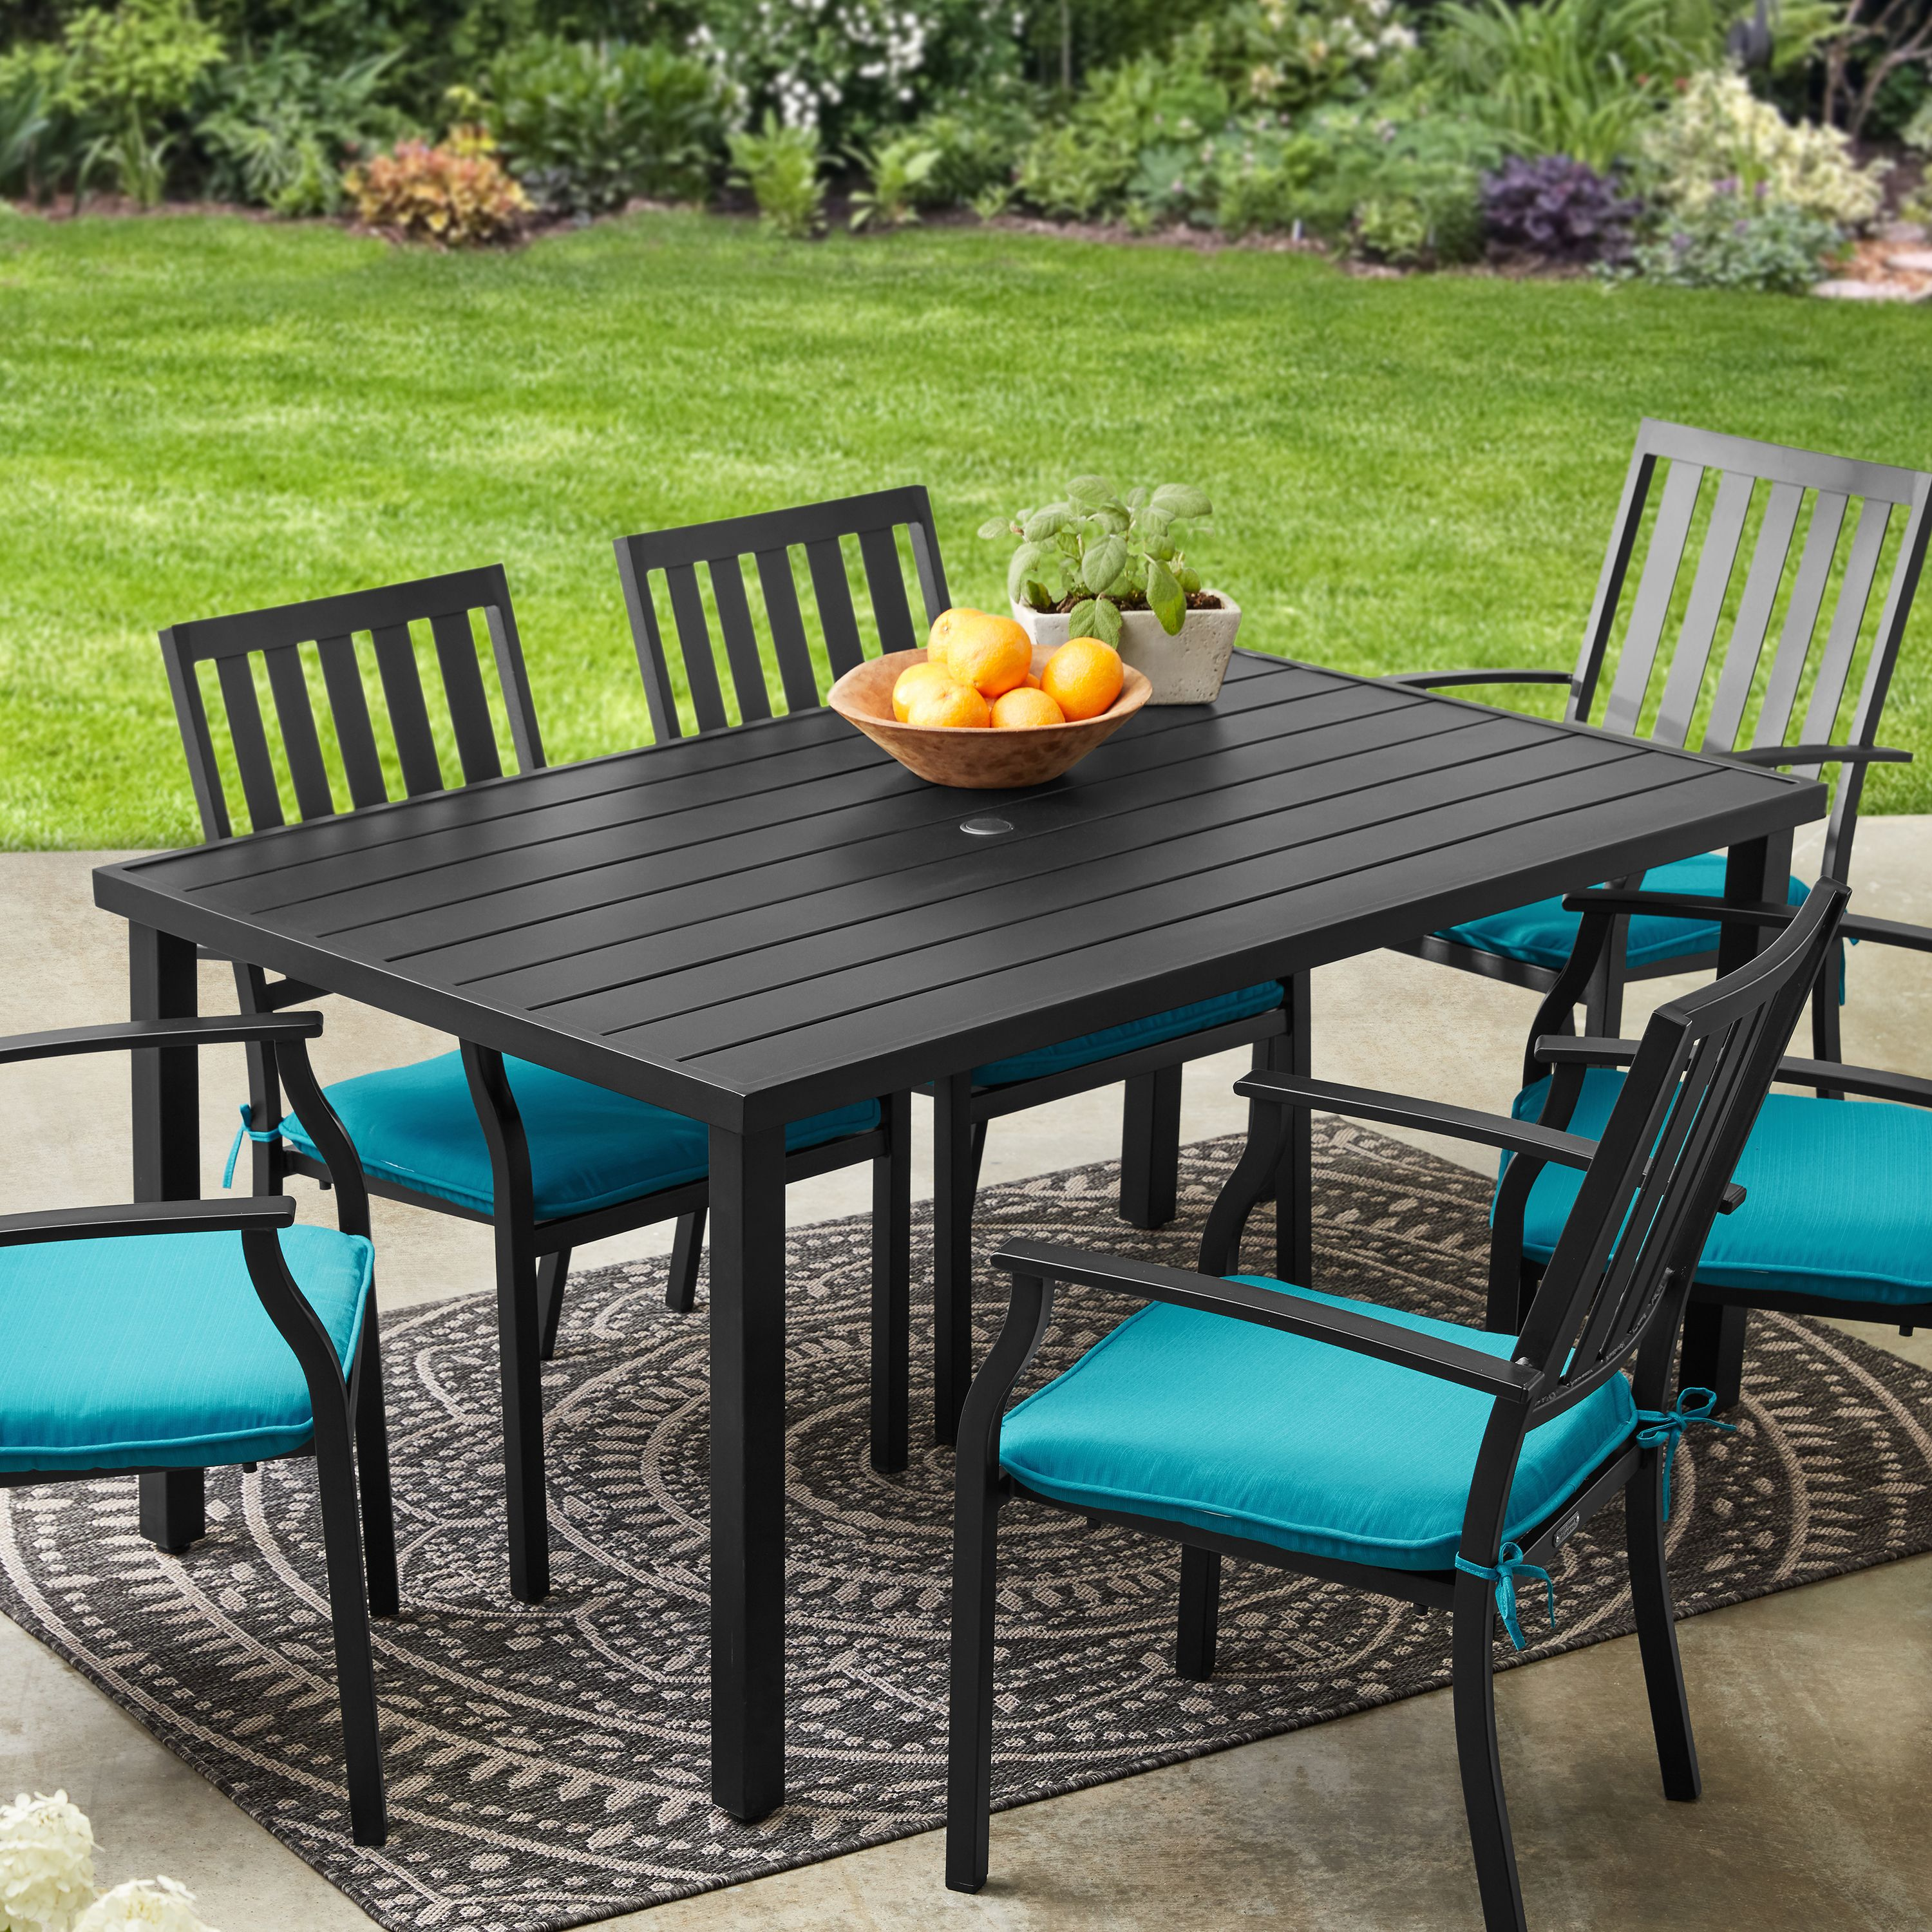 Patio Garden Patio Furniture Conversation Sets Comfortable